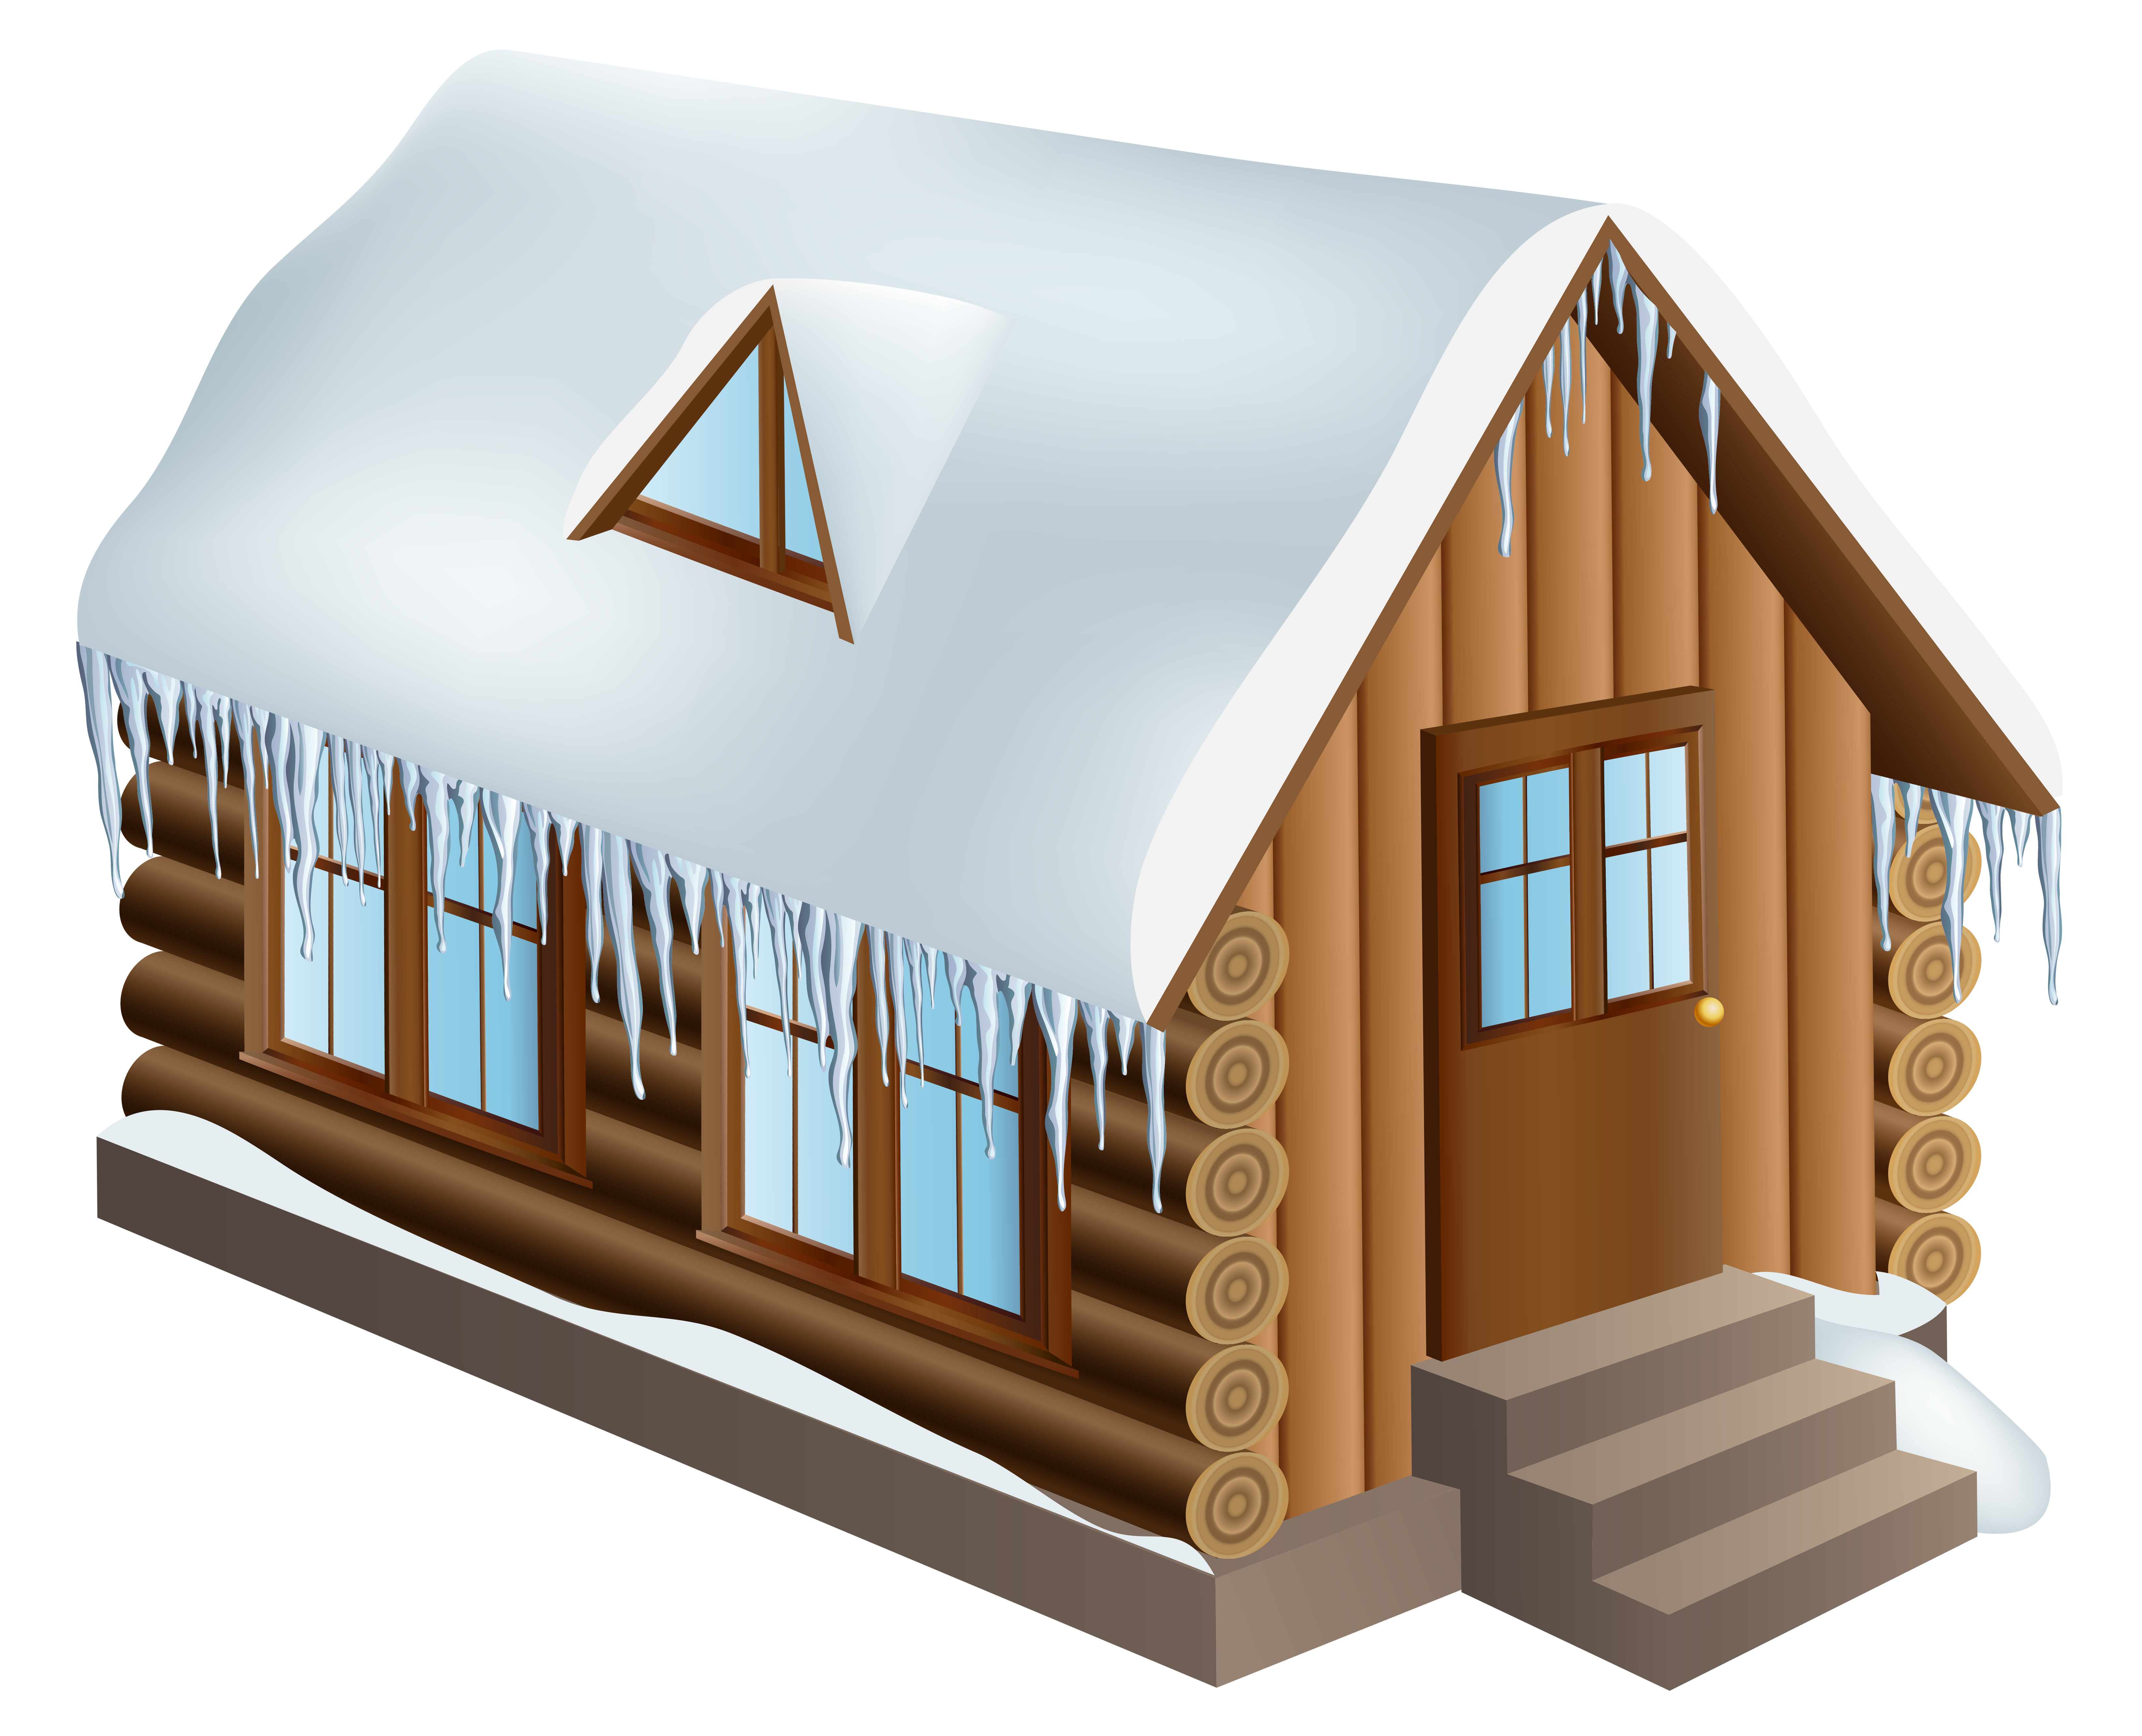 House with snow clipart banner freeuse library Snow House Winter Clip art - Winter Cabin House PNG Clip-Art Image ... banner freeuse library